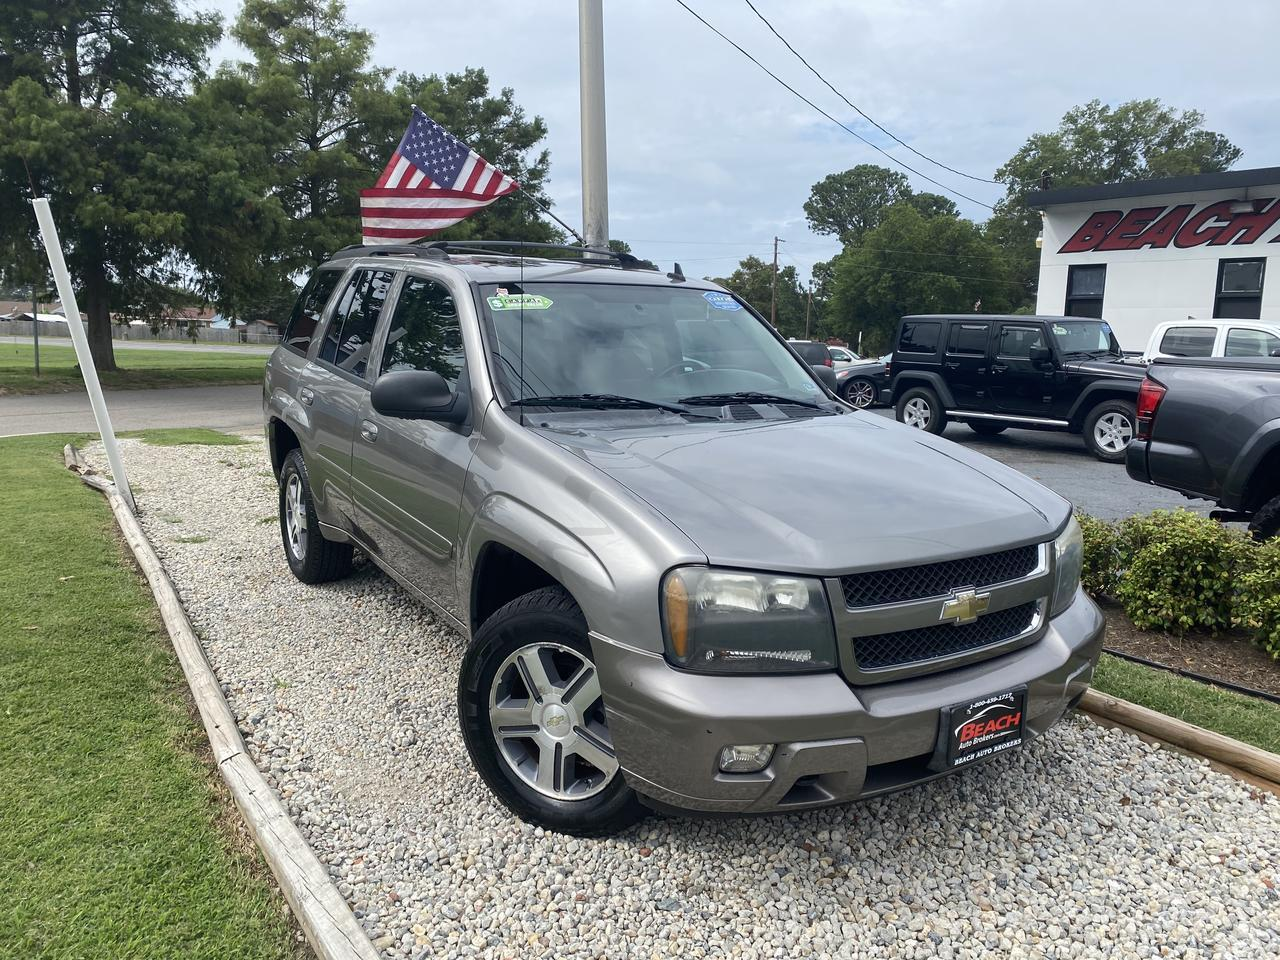 2007 CHEVROLET TRAILBLAZER LT 4X4, WHOLESALE TO THE PUBLIC, CRUISE CONTROL, GET IT BEFORE IT GOES TO AUCTION!